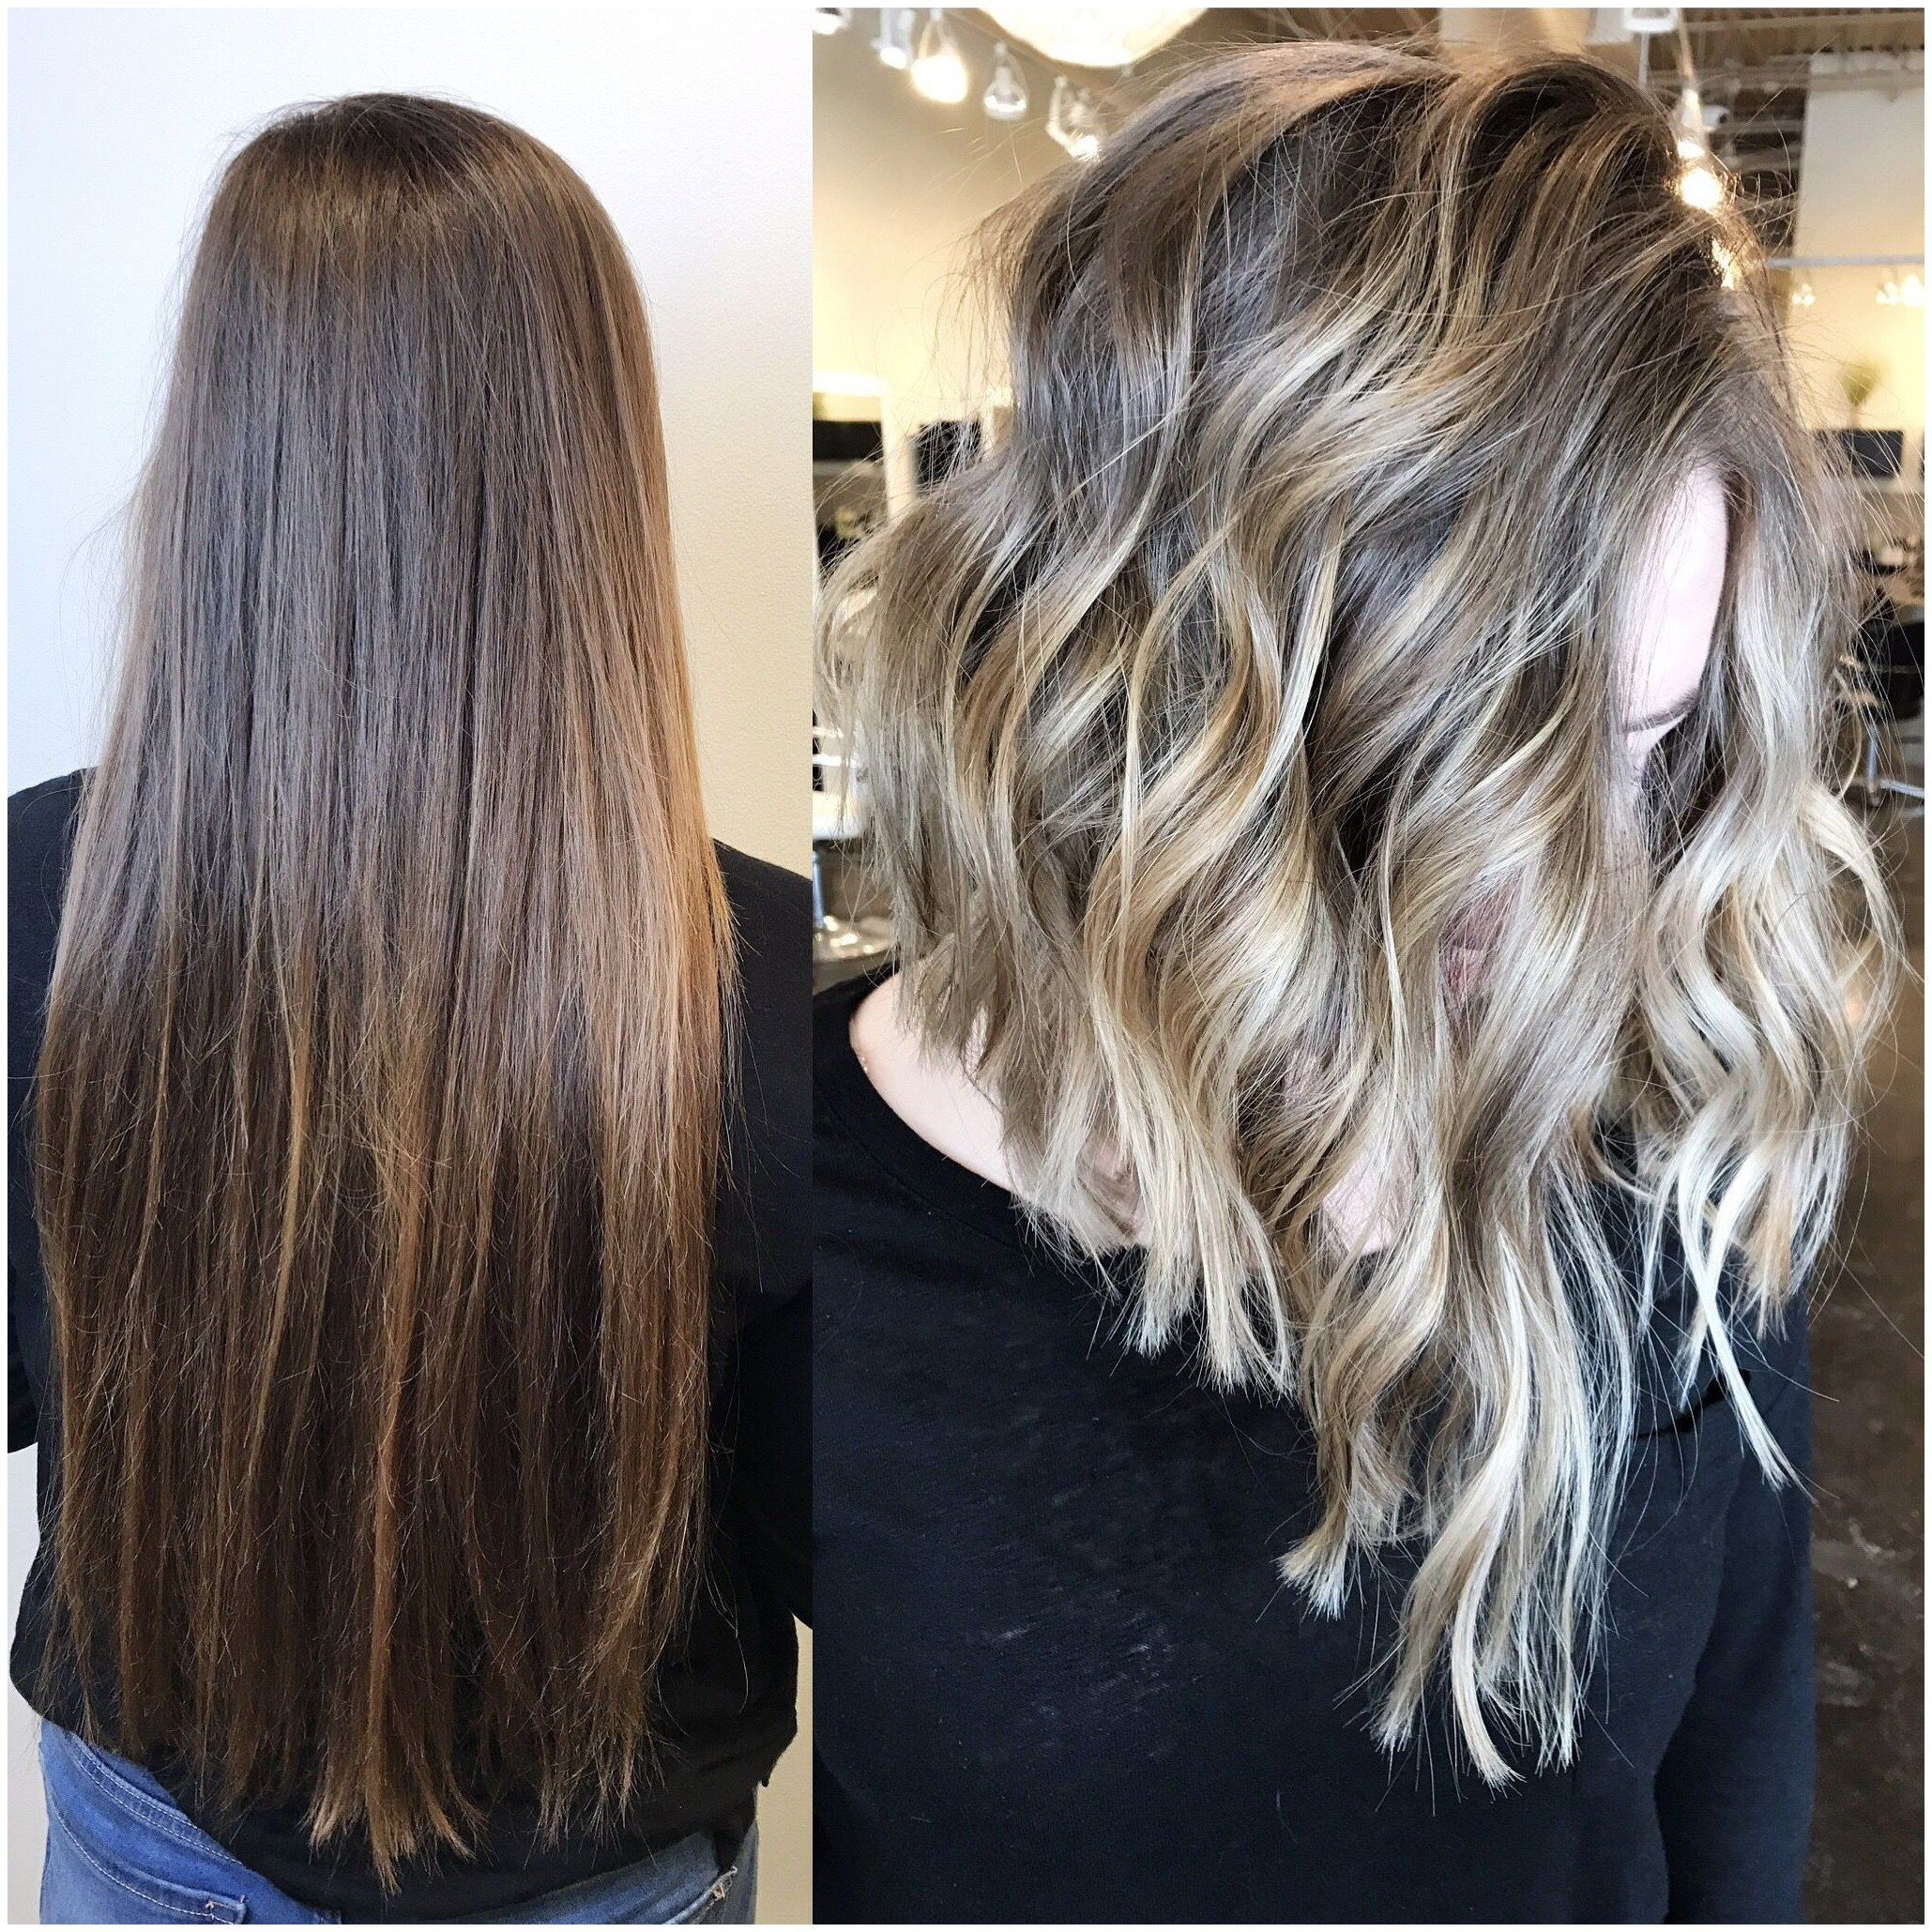 Before And After Transformation From Long To Lob And Blonde Balayage By Hairbynayashafehlhaber At Reveal Salon And Spa Omaha N Balayage Hair Hair Styles Hair